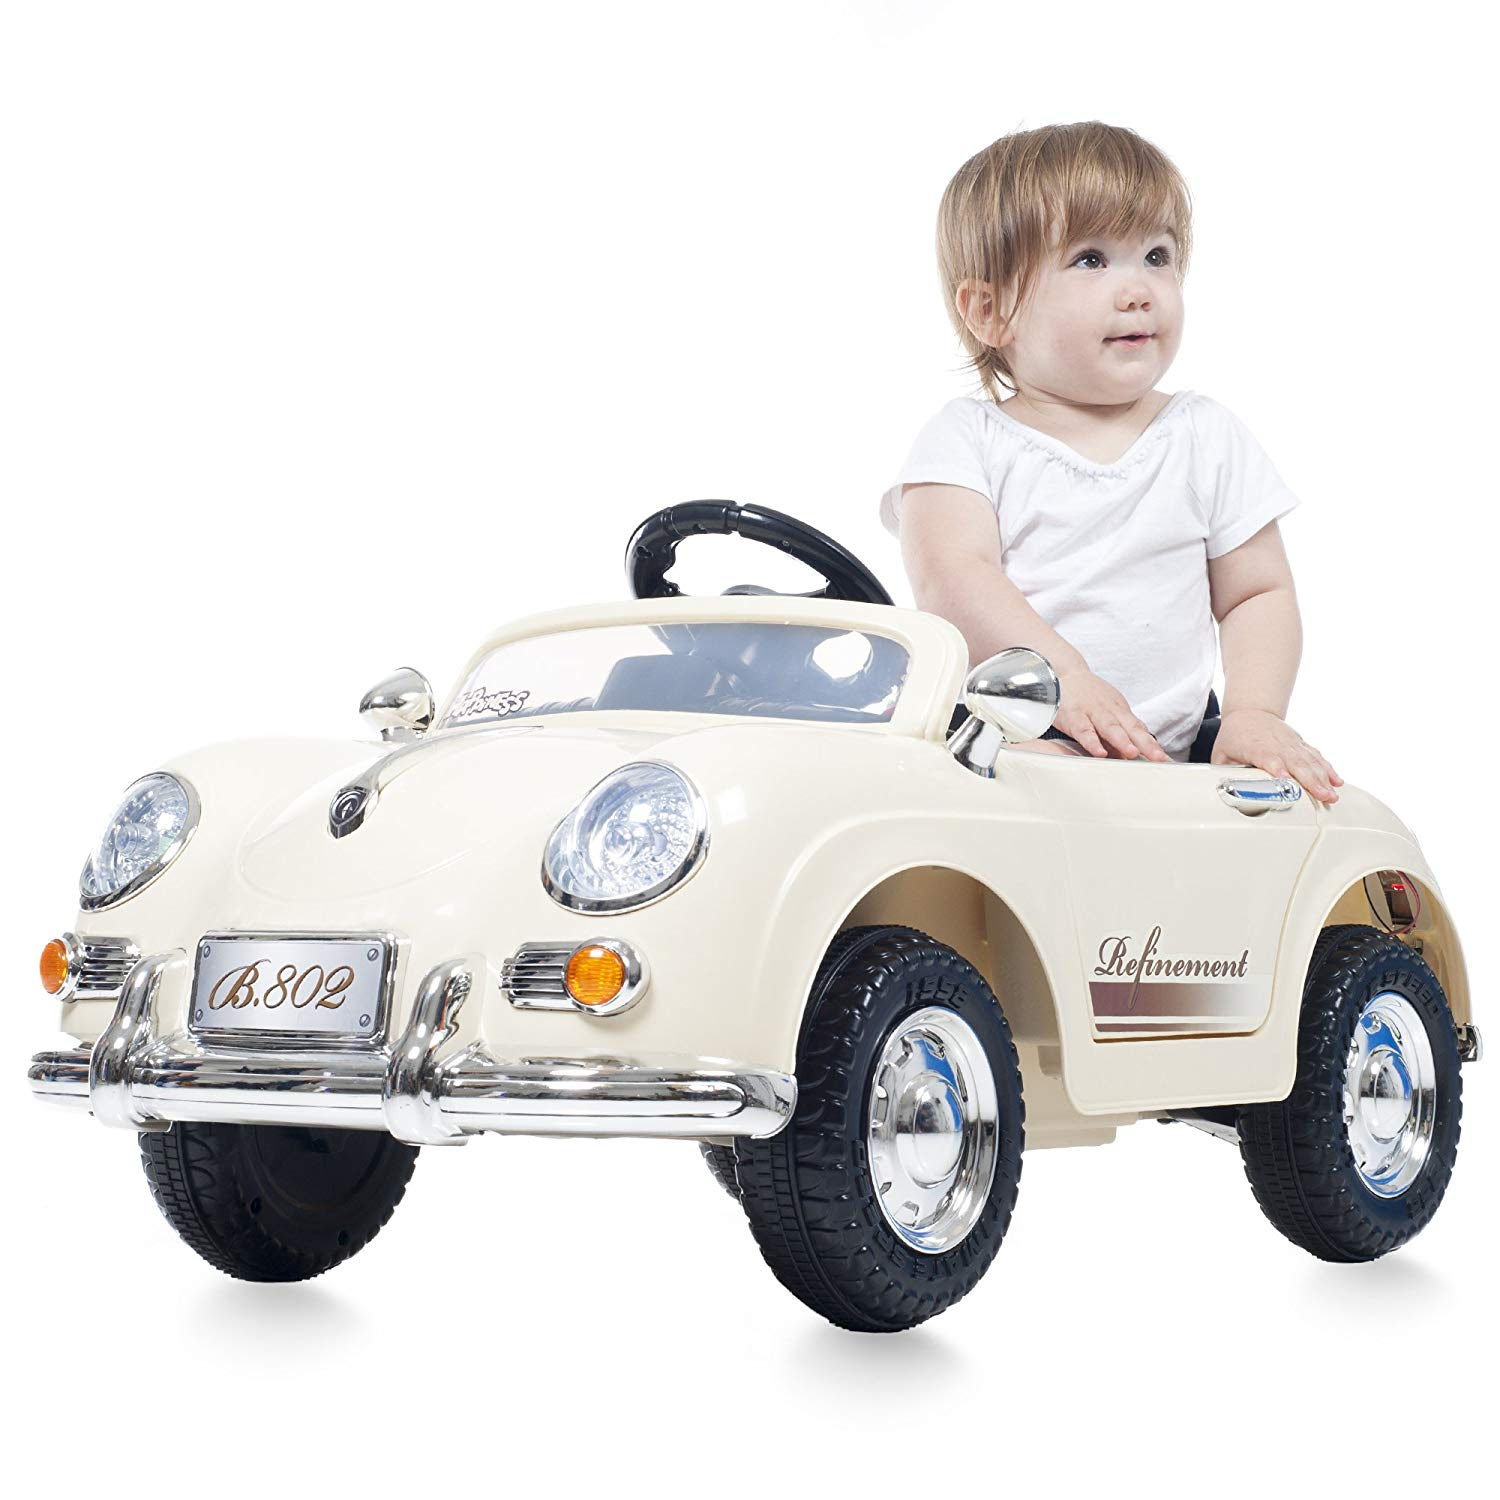 Ride On toy Car Awesome Lil Rider Ride On toy Car Battery Operated Classic